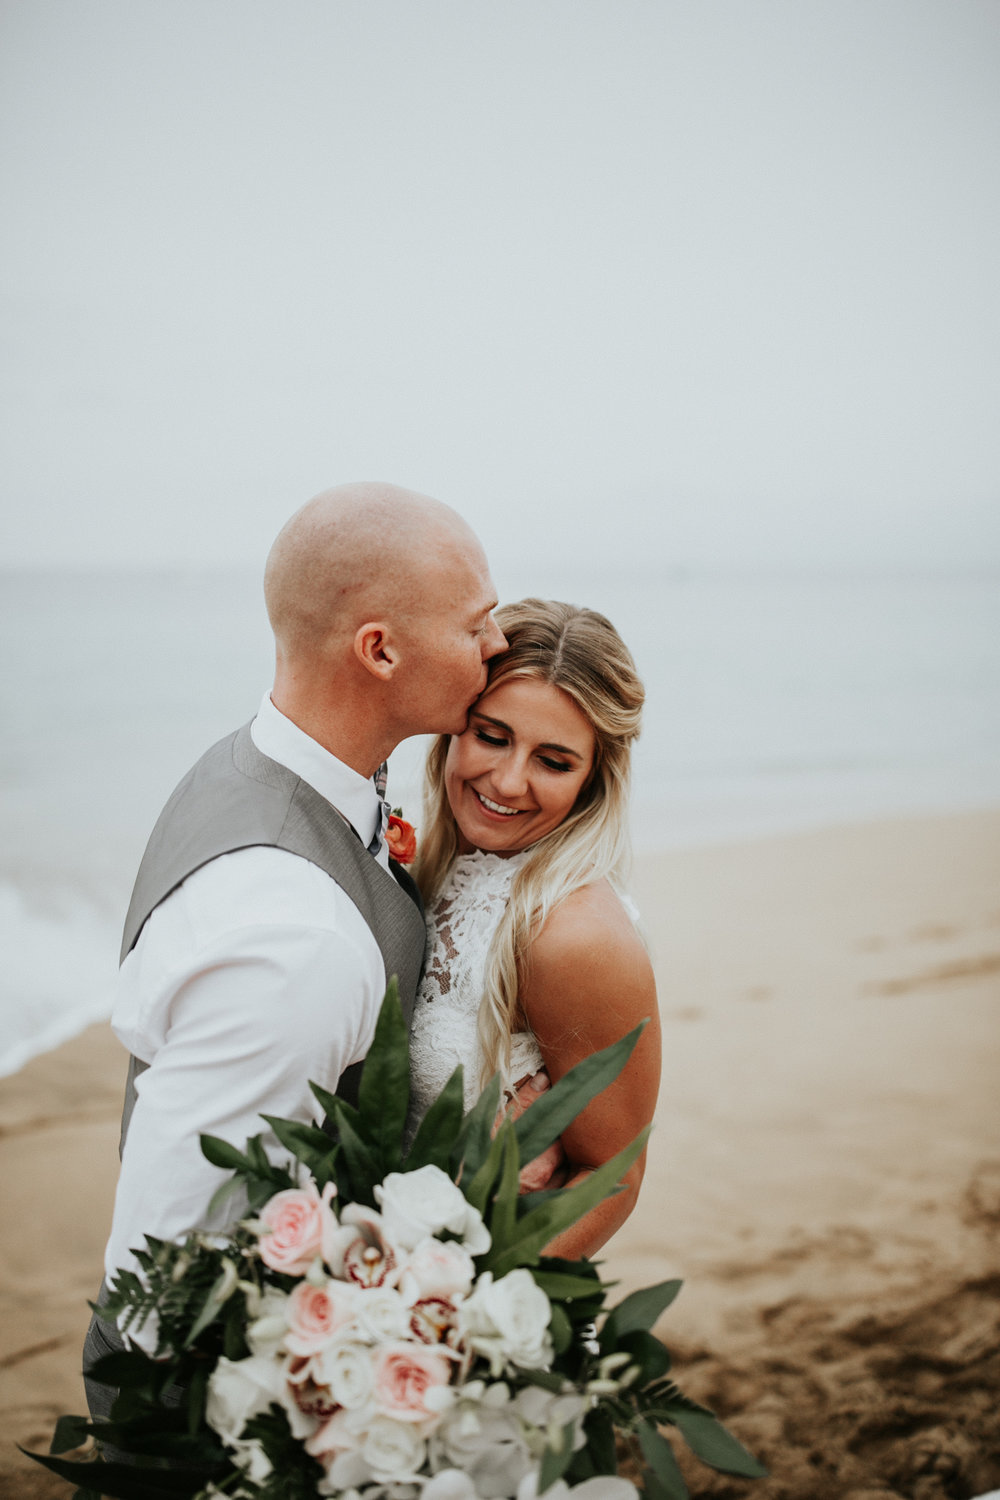 destination-wedding-photographer-hawaii-maui-elopement-86.jpg